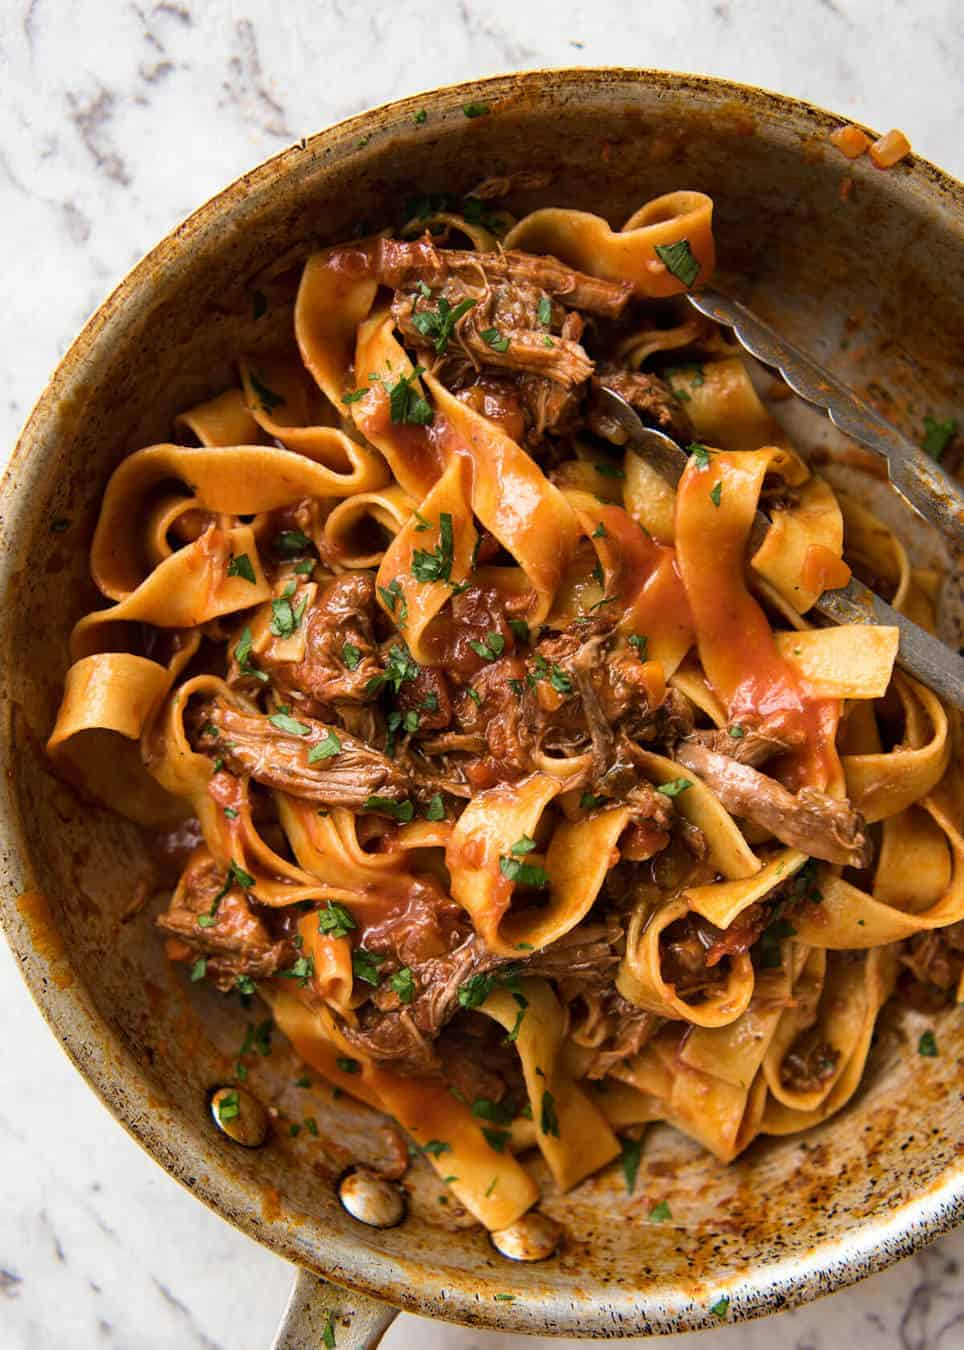 Rich, slow cooked Shredded Beef Ragu Sauce with pappardelle pasta. Stunning Italian comfort food at its best. recipetineats.com